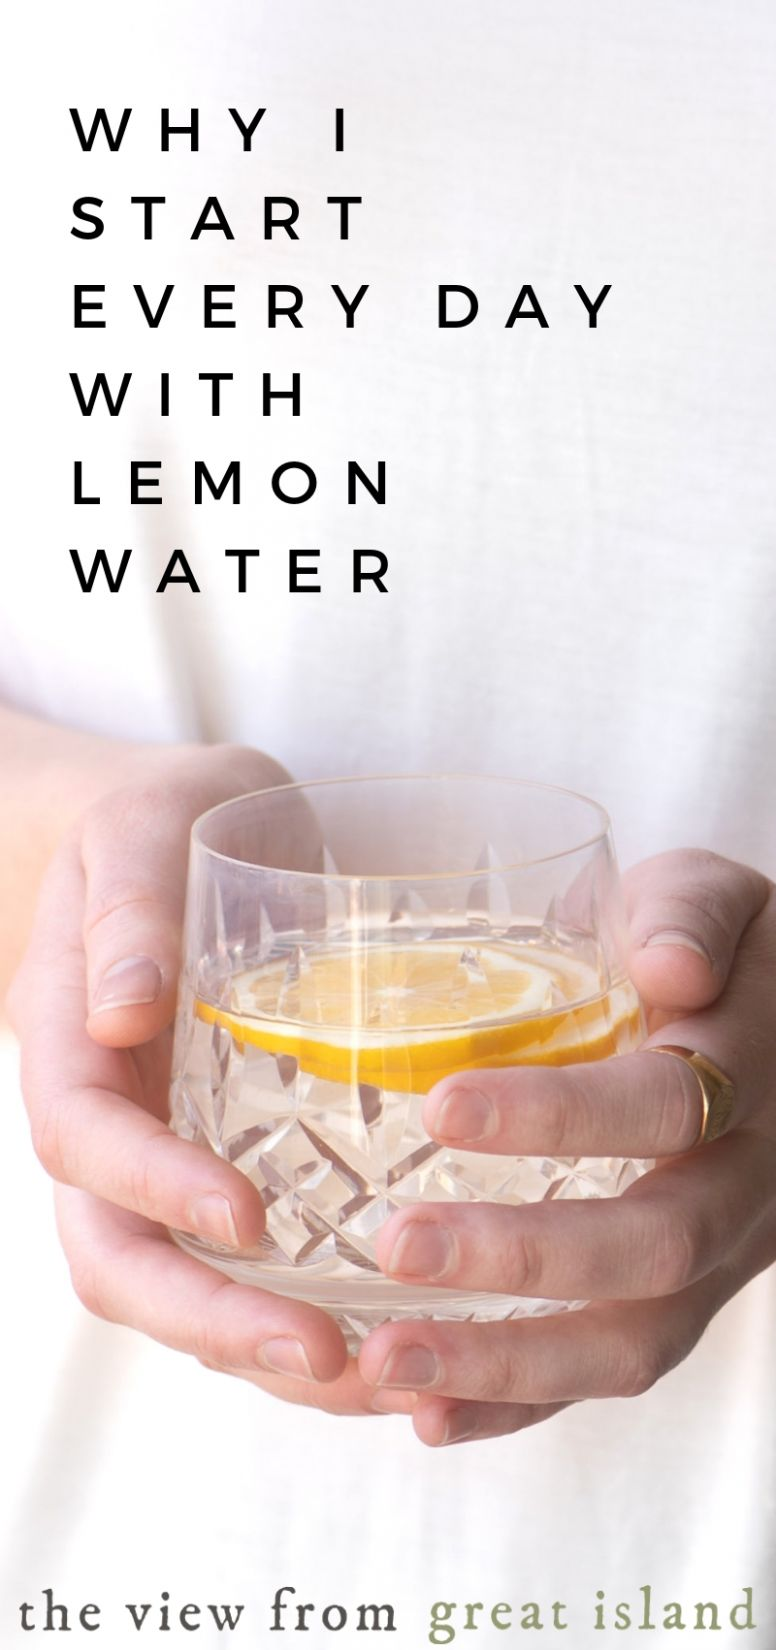 Why I Start Every Day With Lemon Water | The View from Great Island